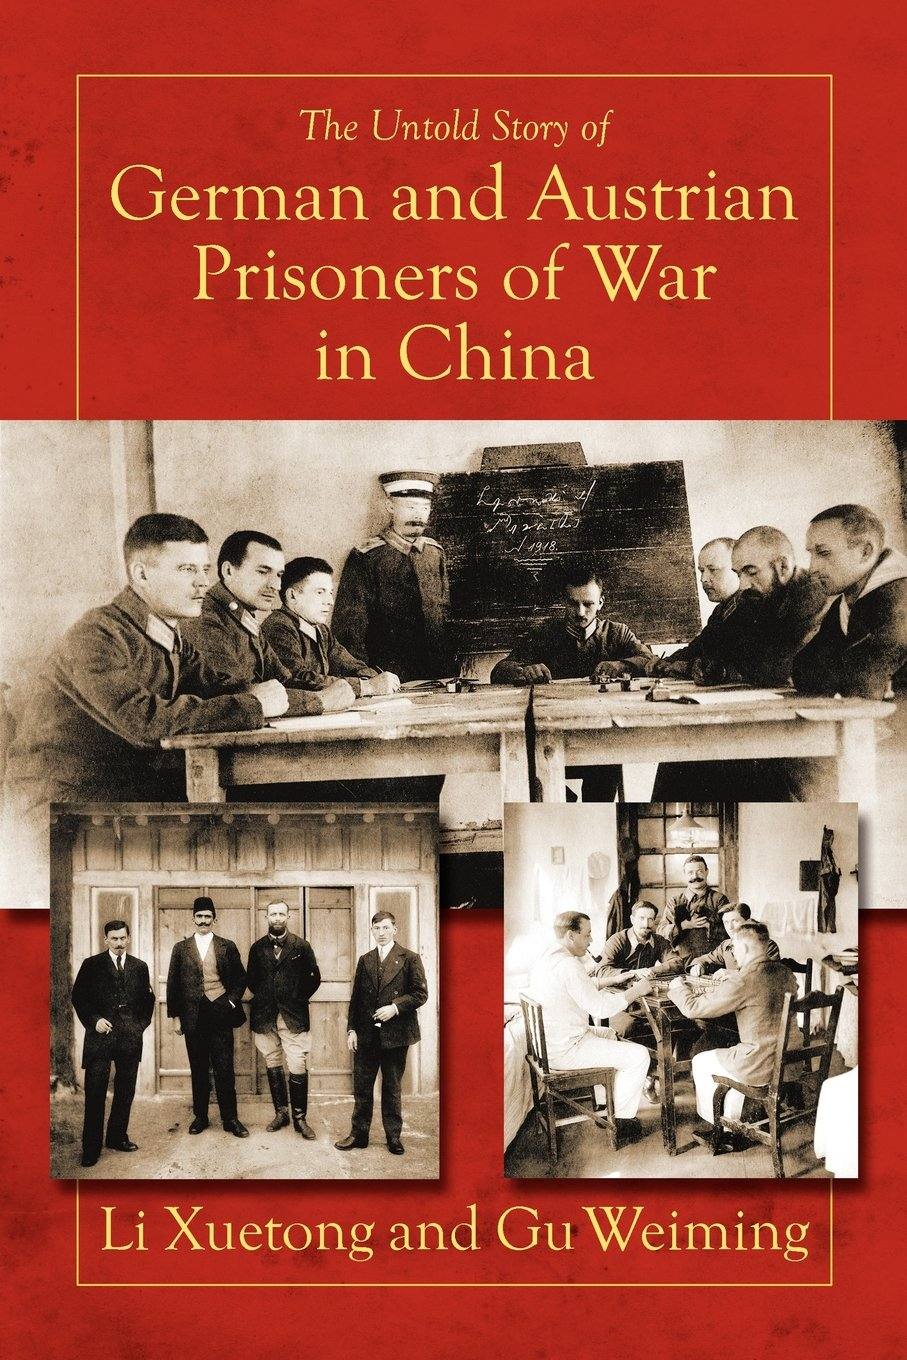 the-untold-story-of-german-and-austrian-prisoners-of-war-in-china